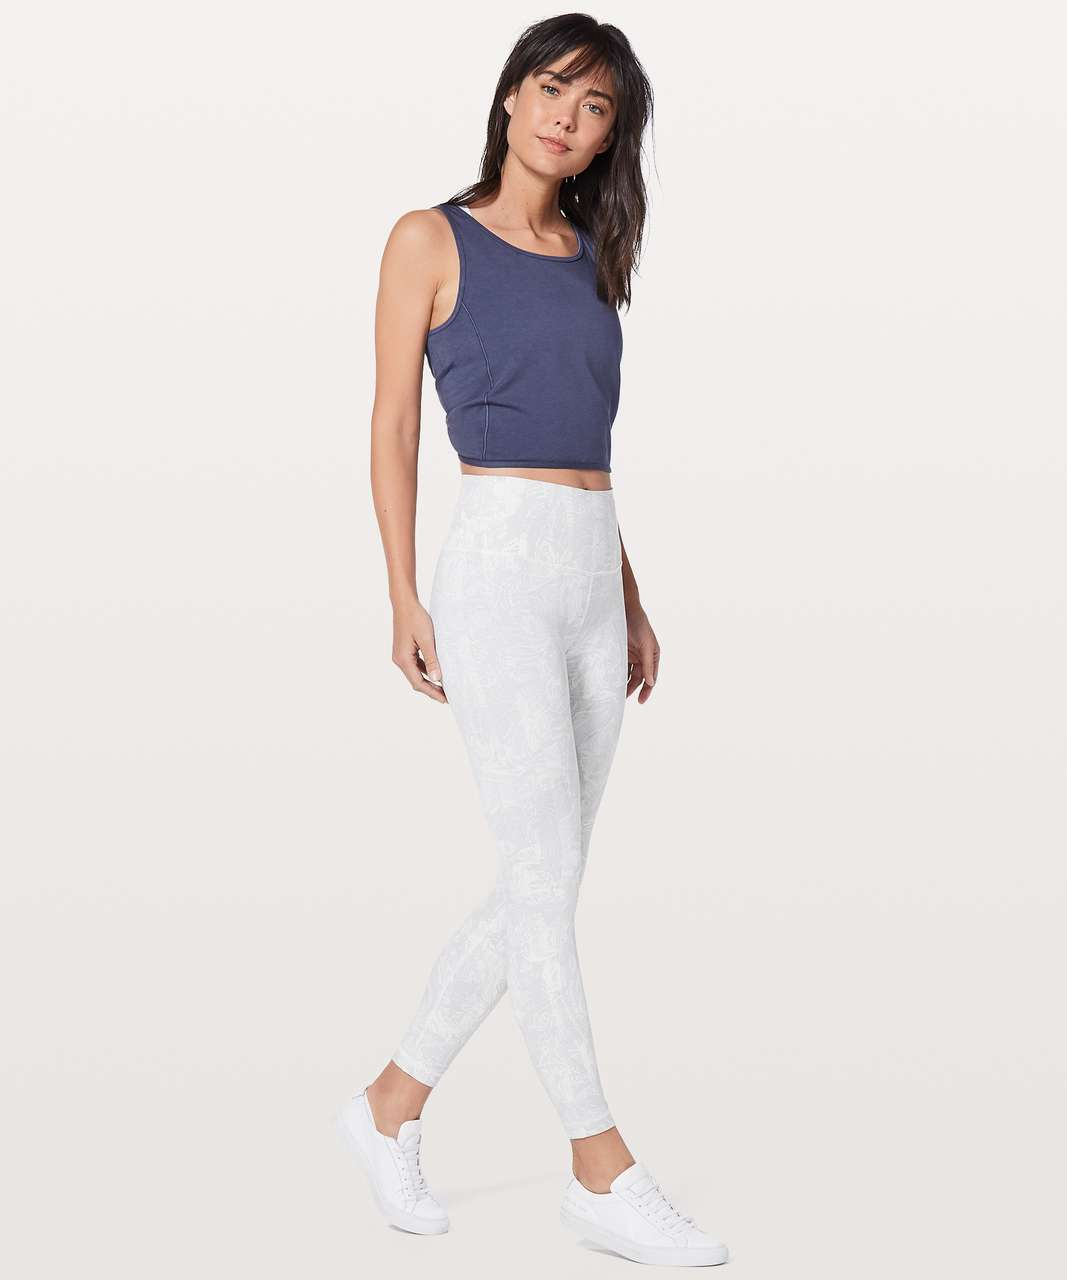 "Lululemon Wunder Under Hi-Rise 7/8 Tight 25"" - Eternal Wave White"